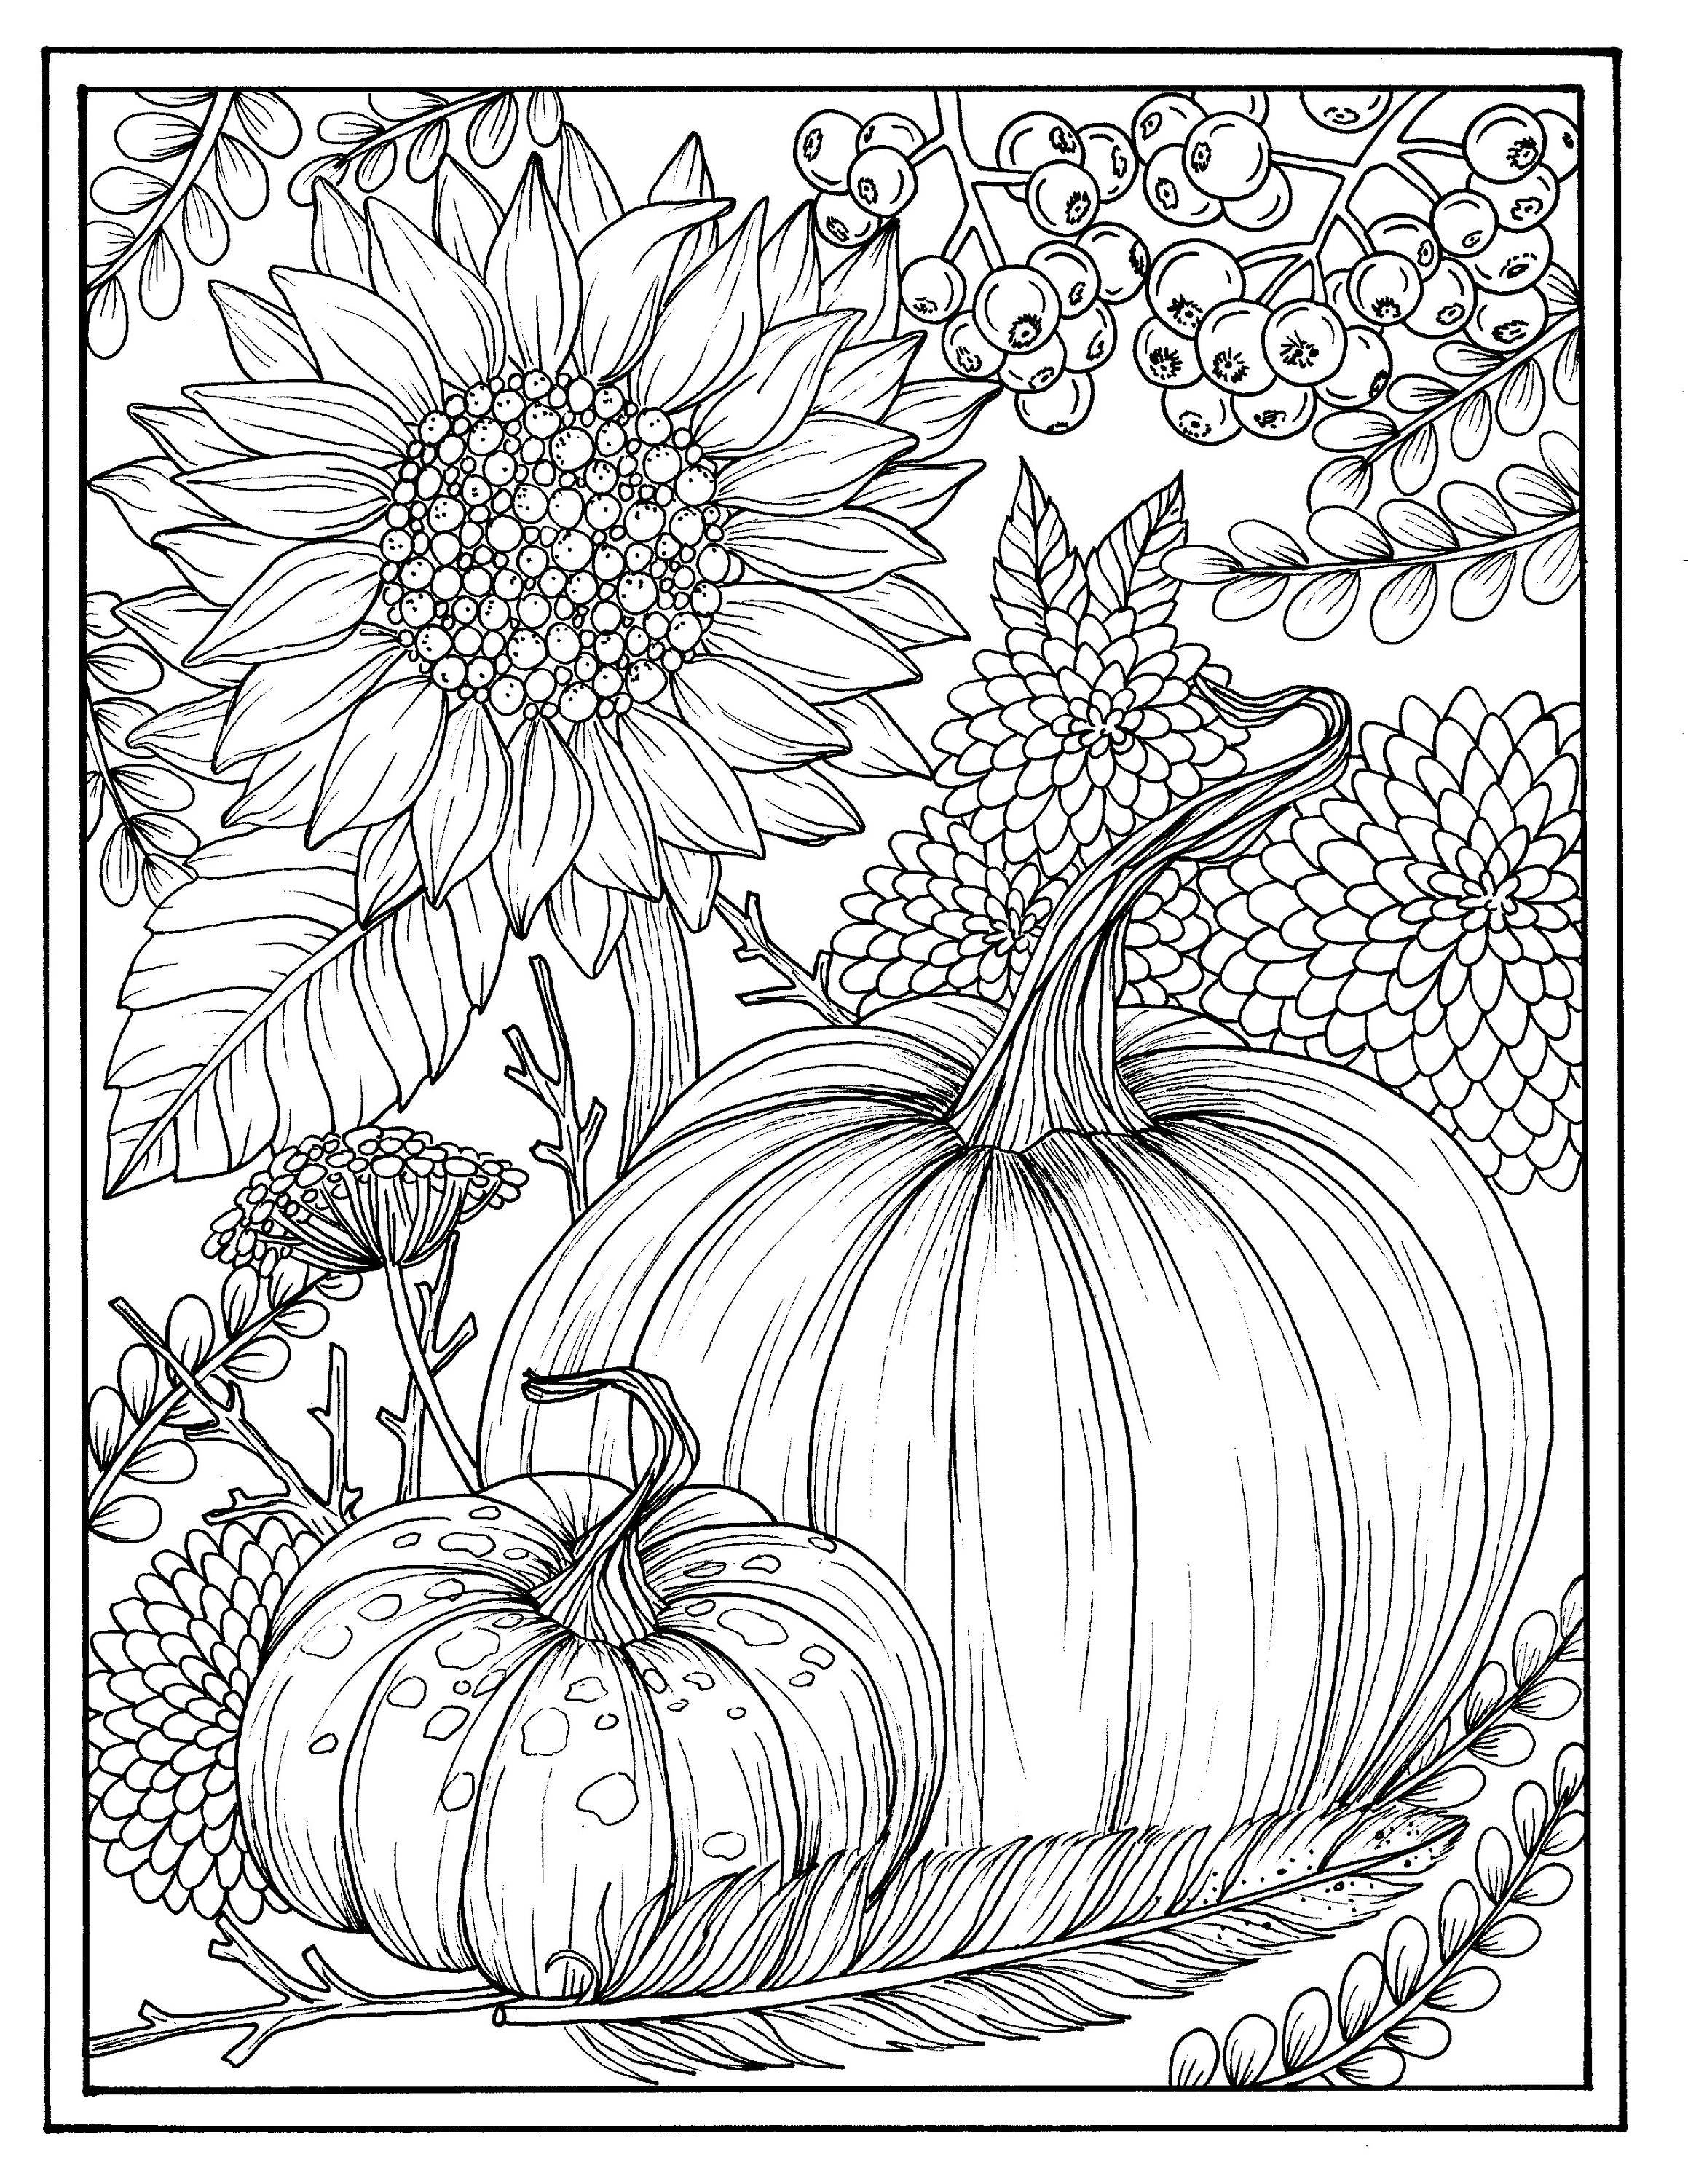 Fall flowers and pumpkins digital coloring page Thanksgiving